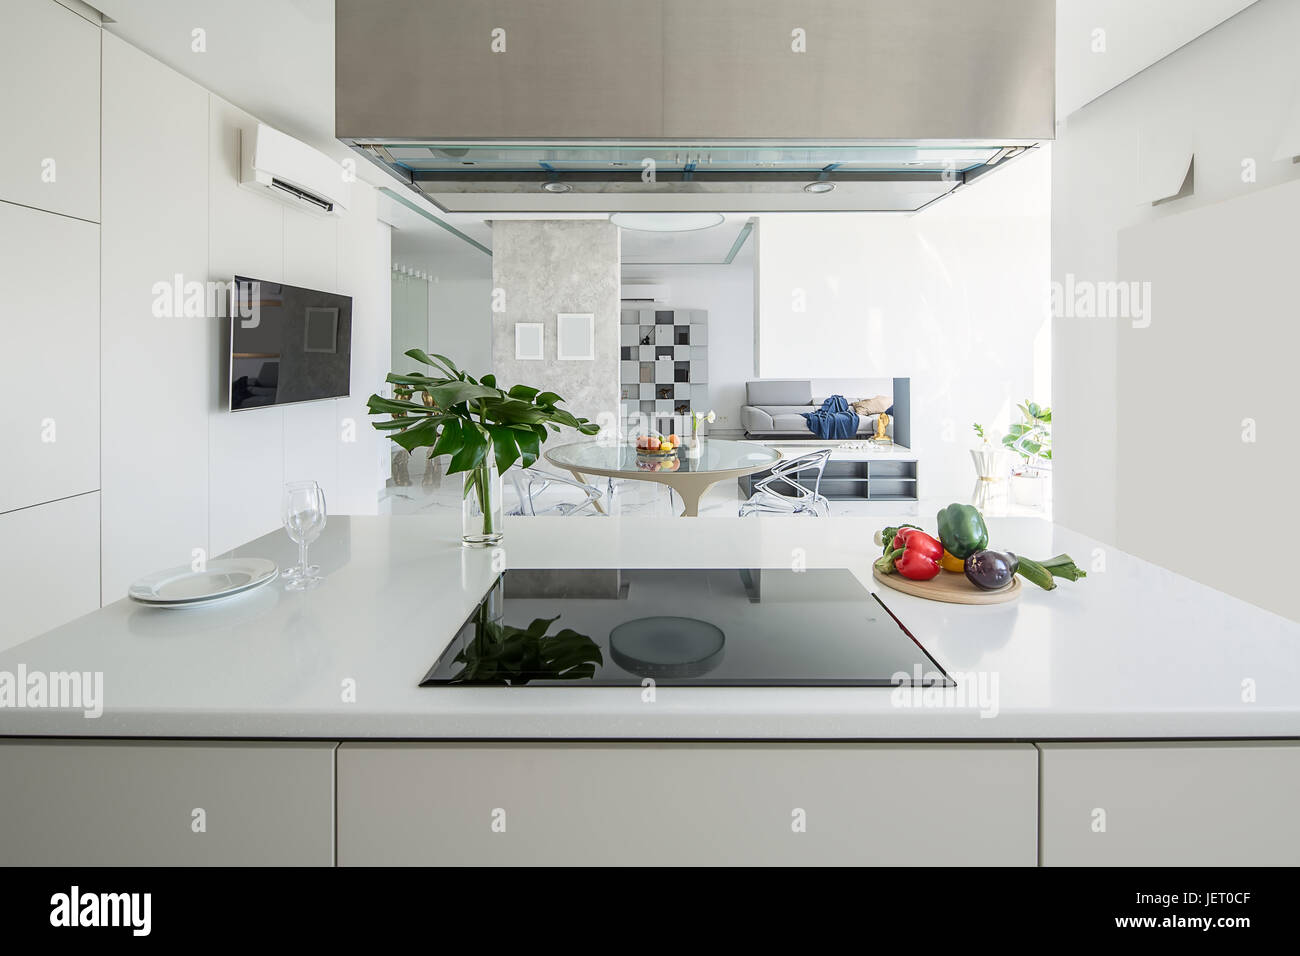 Light Kitchen Island With A Stove And A Kitchen Hood On The Stock